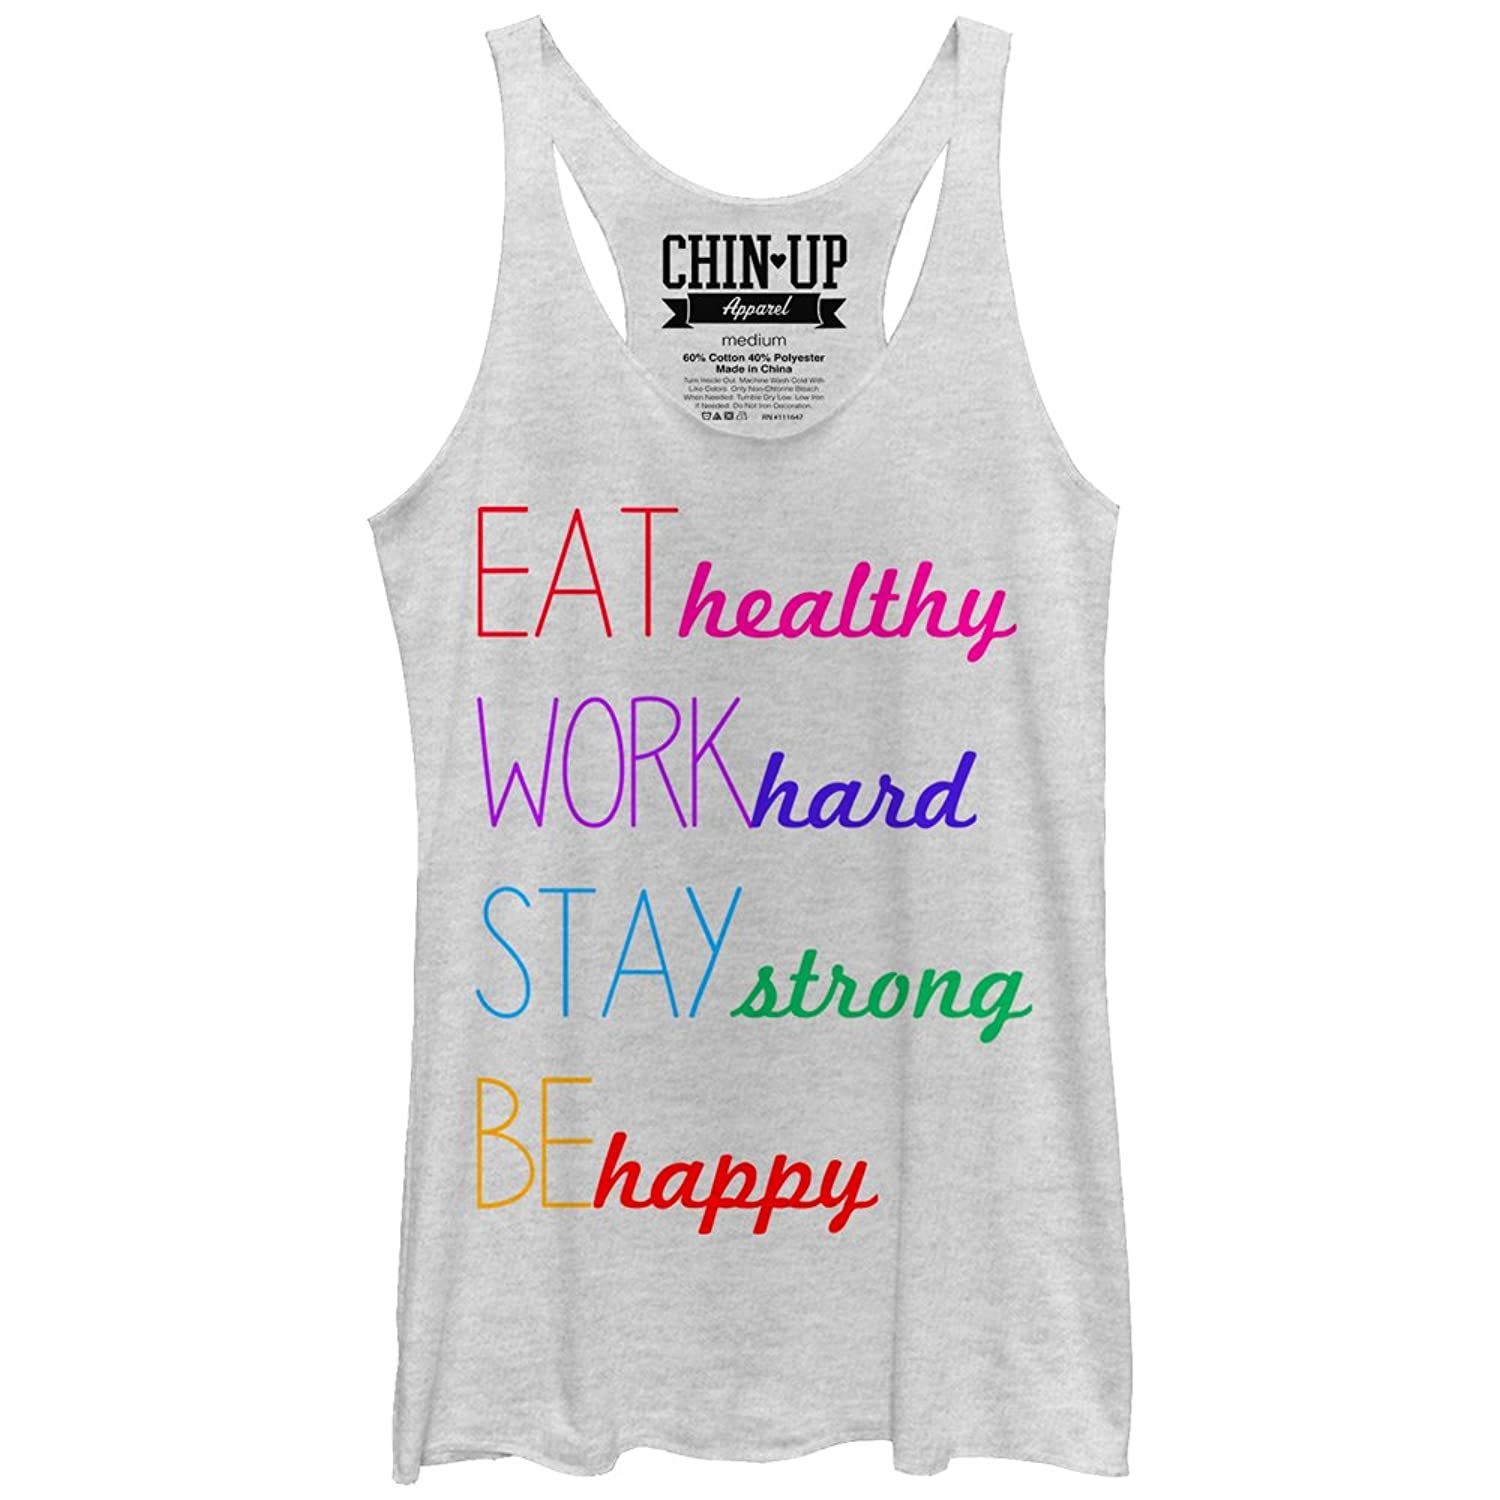 CHIN UP Happy Womens Graphic Racerback Tank